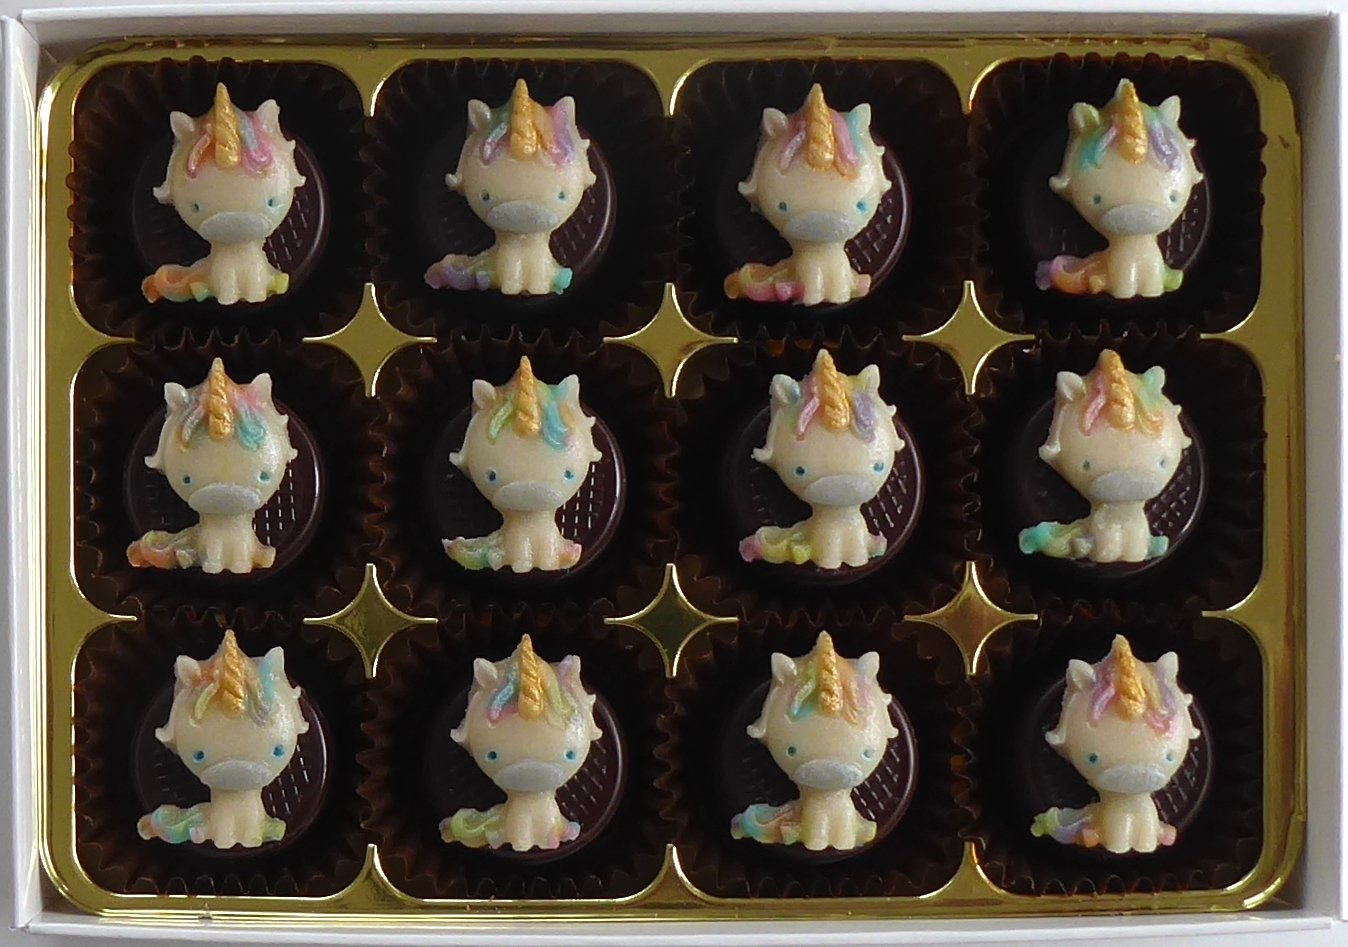 12 little unicorns ready to give.